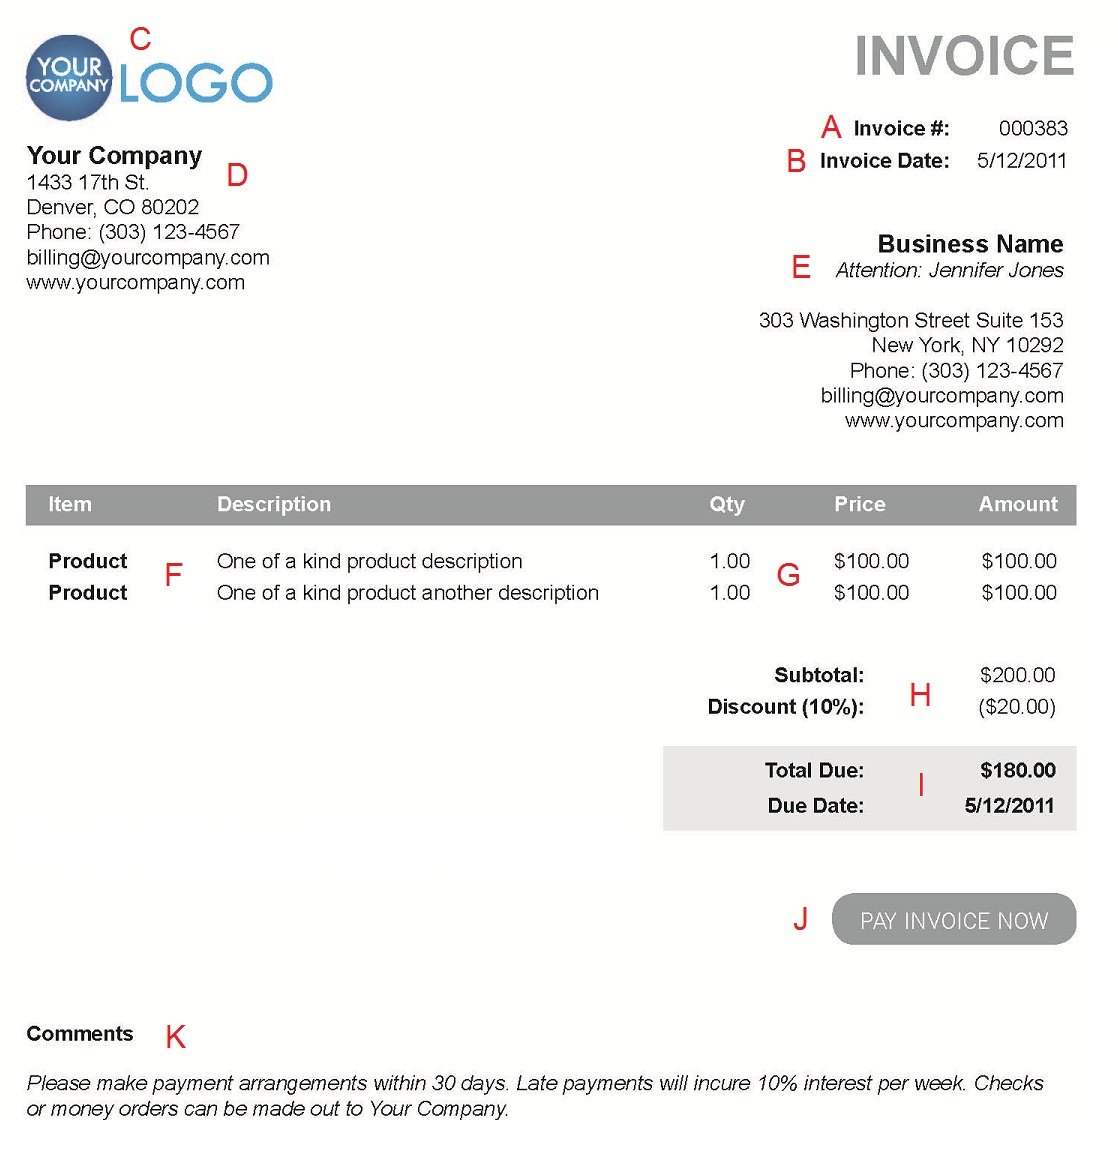 Coolmathgamesus  Seductive The  Different Sections Of An Electronic Payment Invoice With Fair A  With Beauteous Daycare Receipt Template Also Receipt Of Goods In Addition Custom Receipt And Hertz Platepass Receipt As Well As Usps Certified Return Receipt Additionally Yahoo Mail Read Receipt From Paysimplecom With Coolmathgamesus  Fair The  Different Sections Of An Electronic Payment Invoice With Beauteous A  And Seductive Daycare Receipt Template Also Receipt Of Goods In Addition Custom Receipt From Paysimplecom